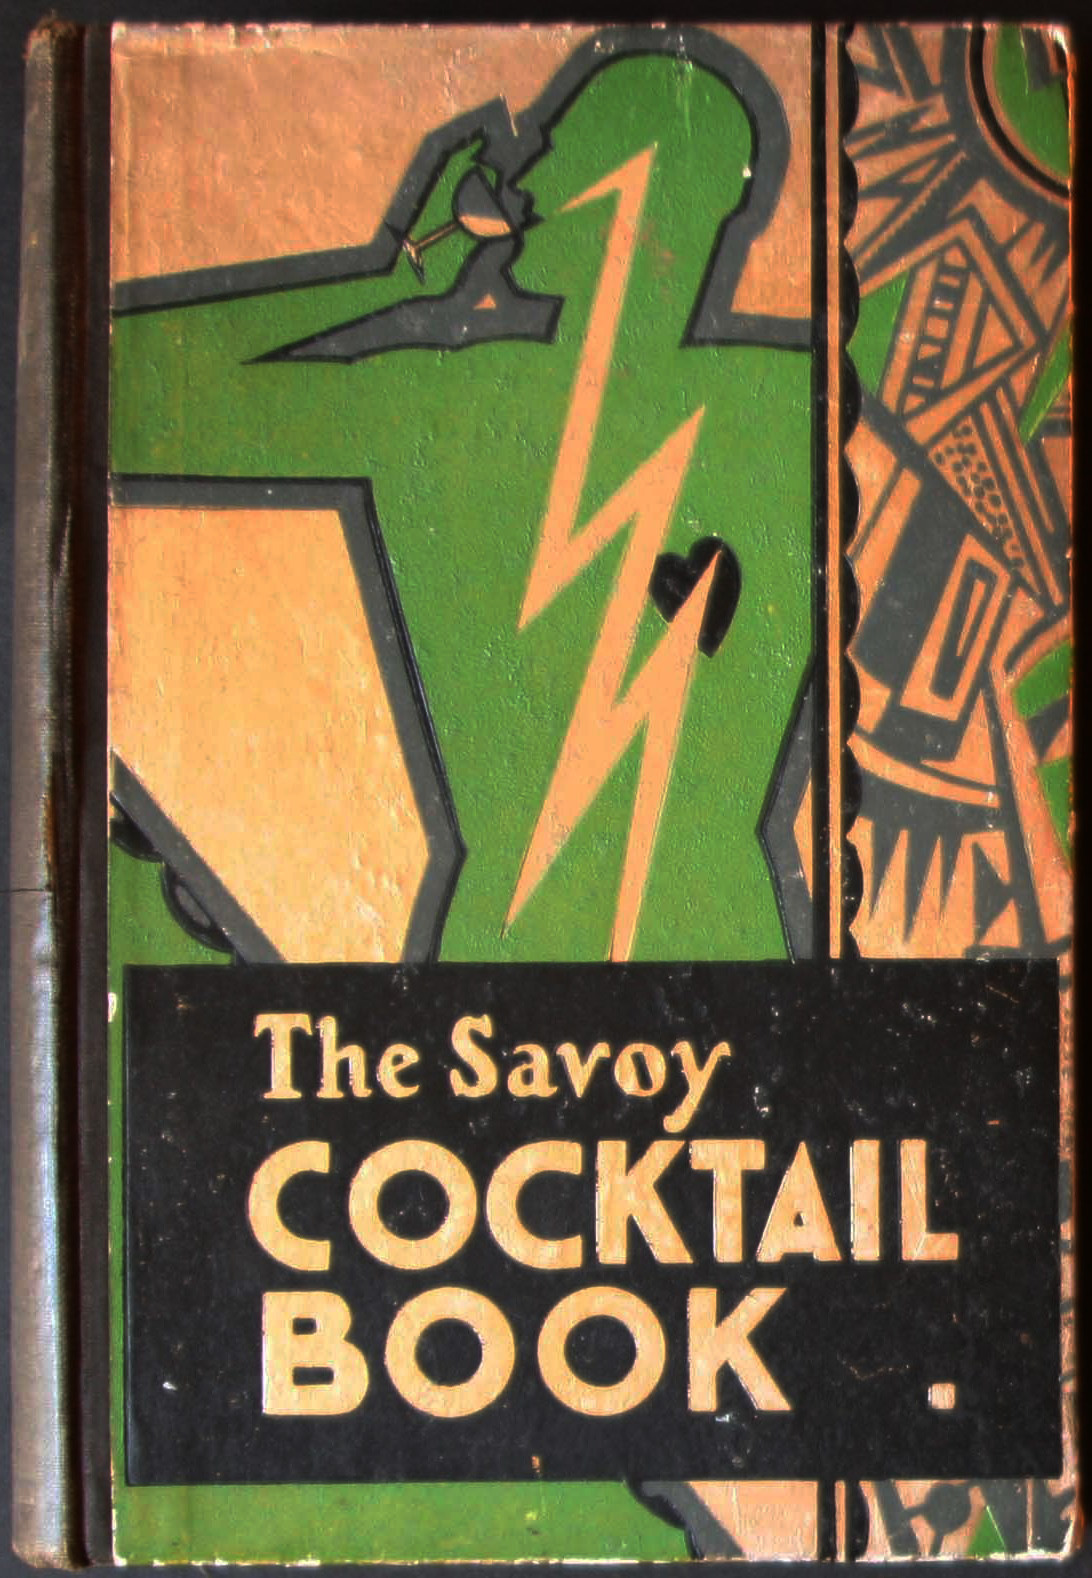 The Savoy Cocktail Book first edition